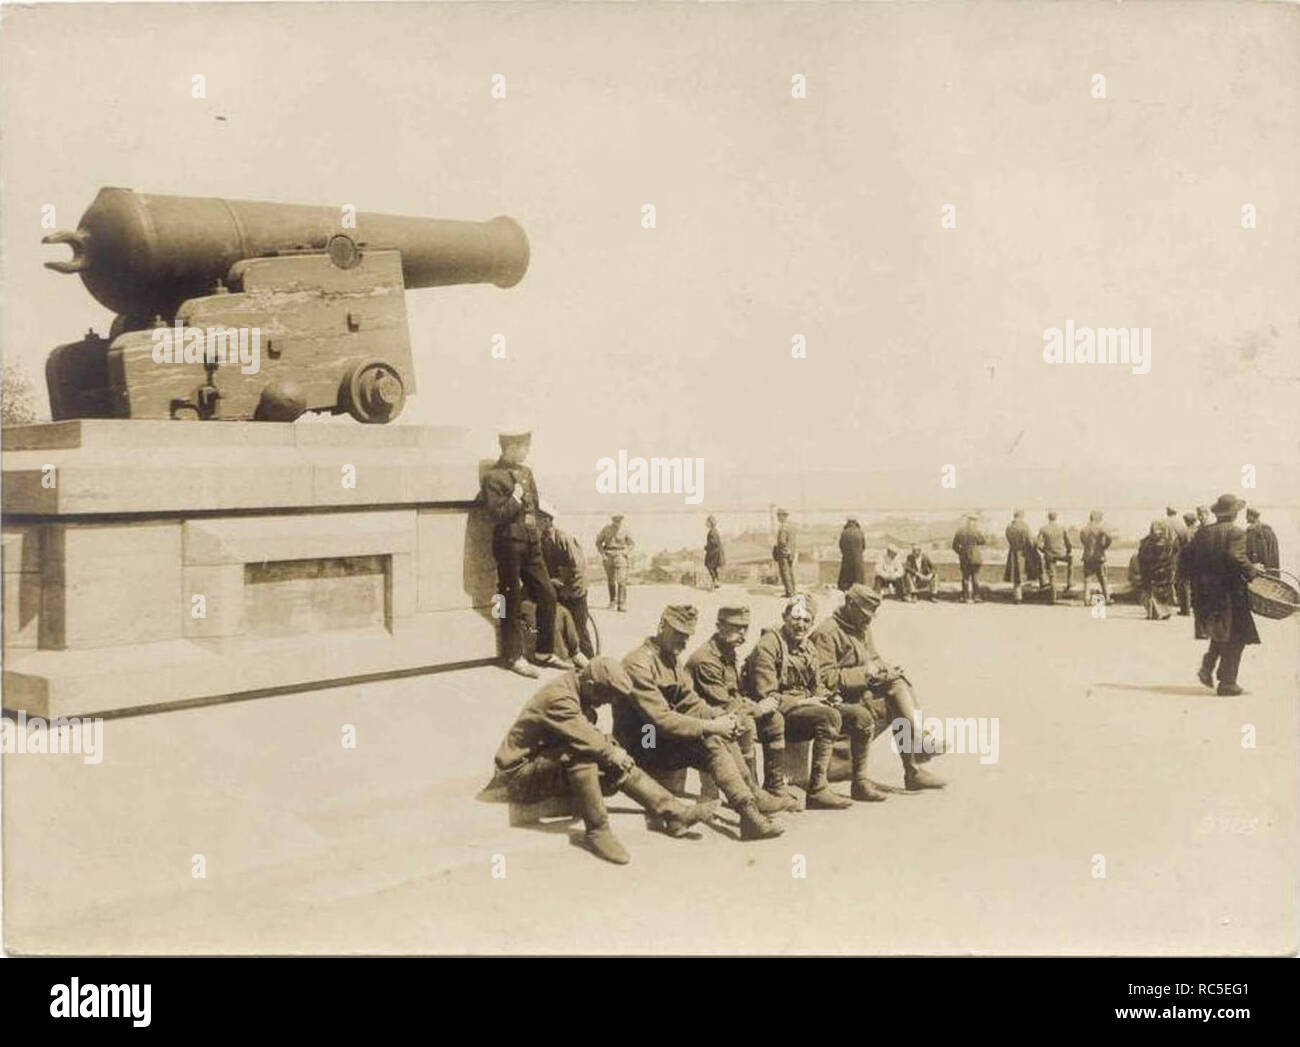 A 1918 postcard showing soldiers of the Austro-Hungarian Army resting by the gun from Tiger. - Stock Image